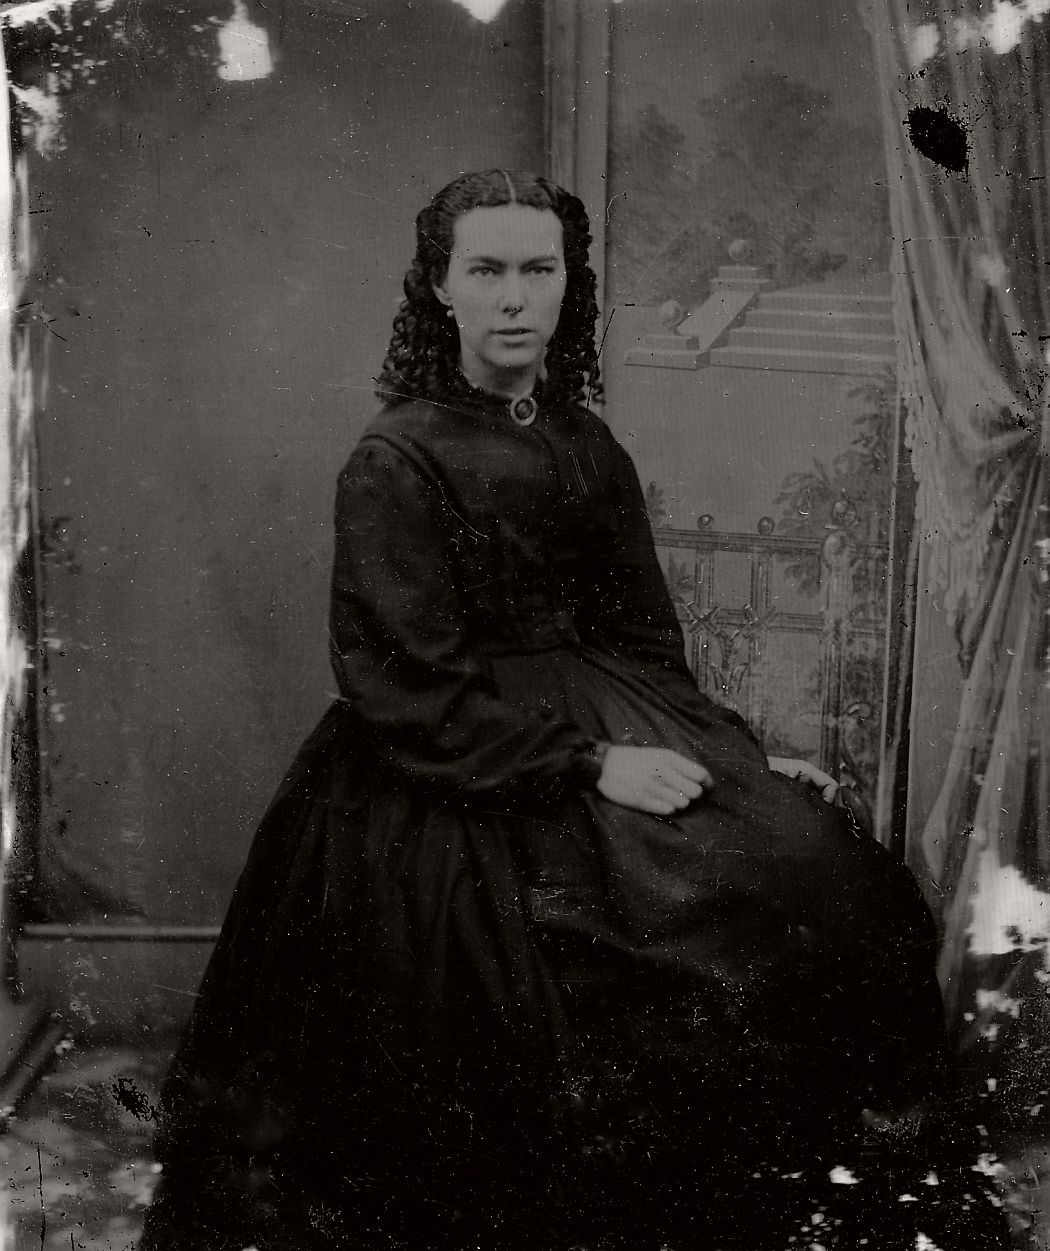 vintage-daguerreotypes-of-widows-in-mourning-victorian-era-1800s-44